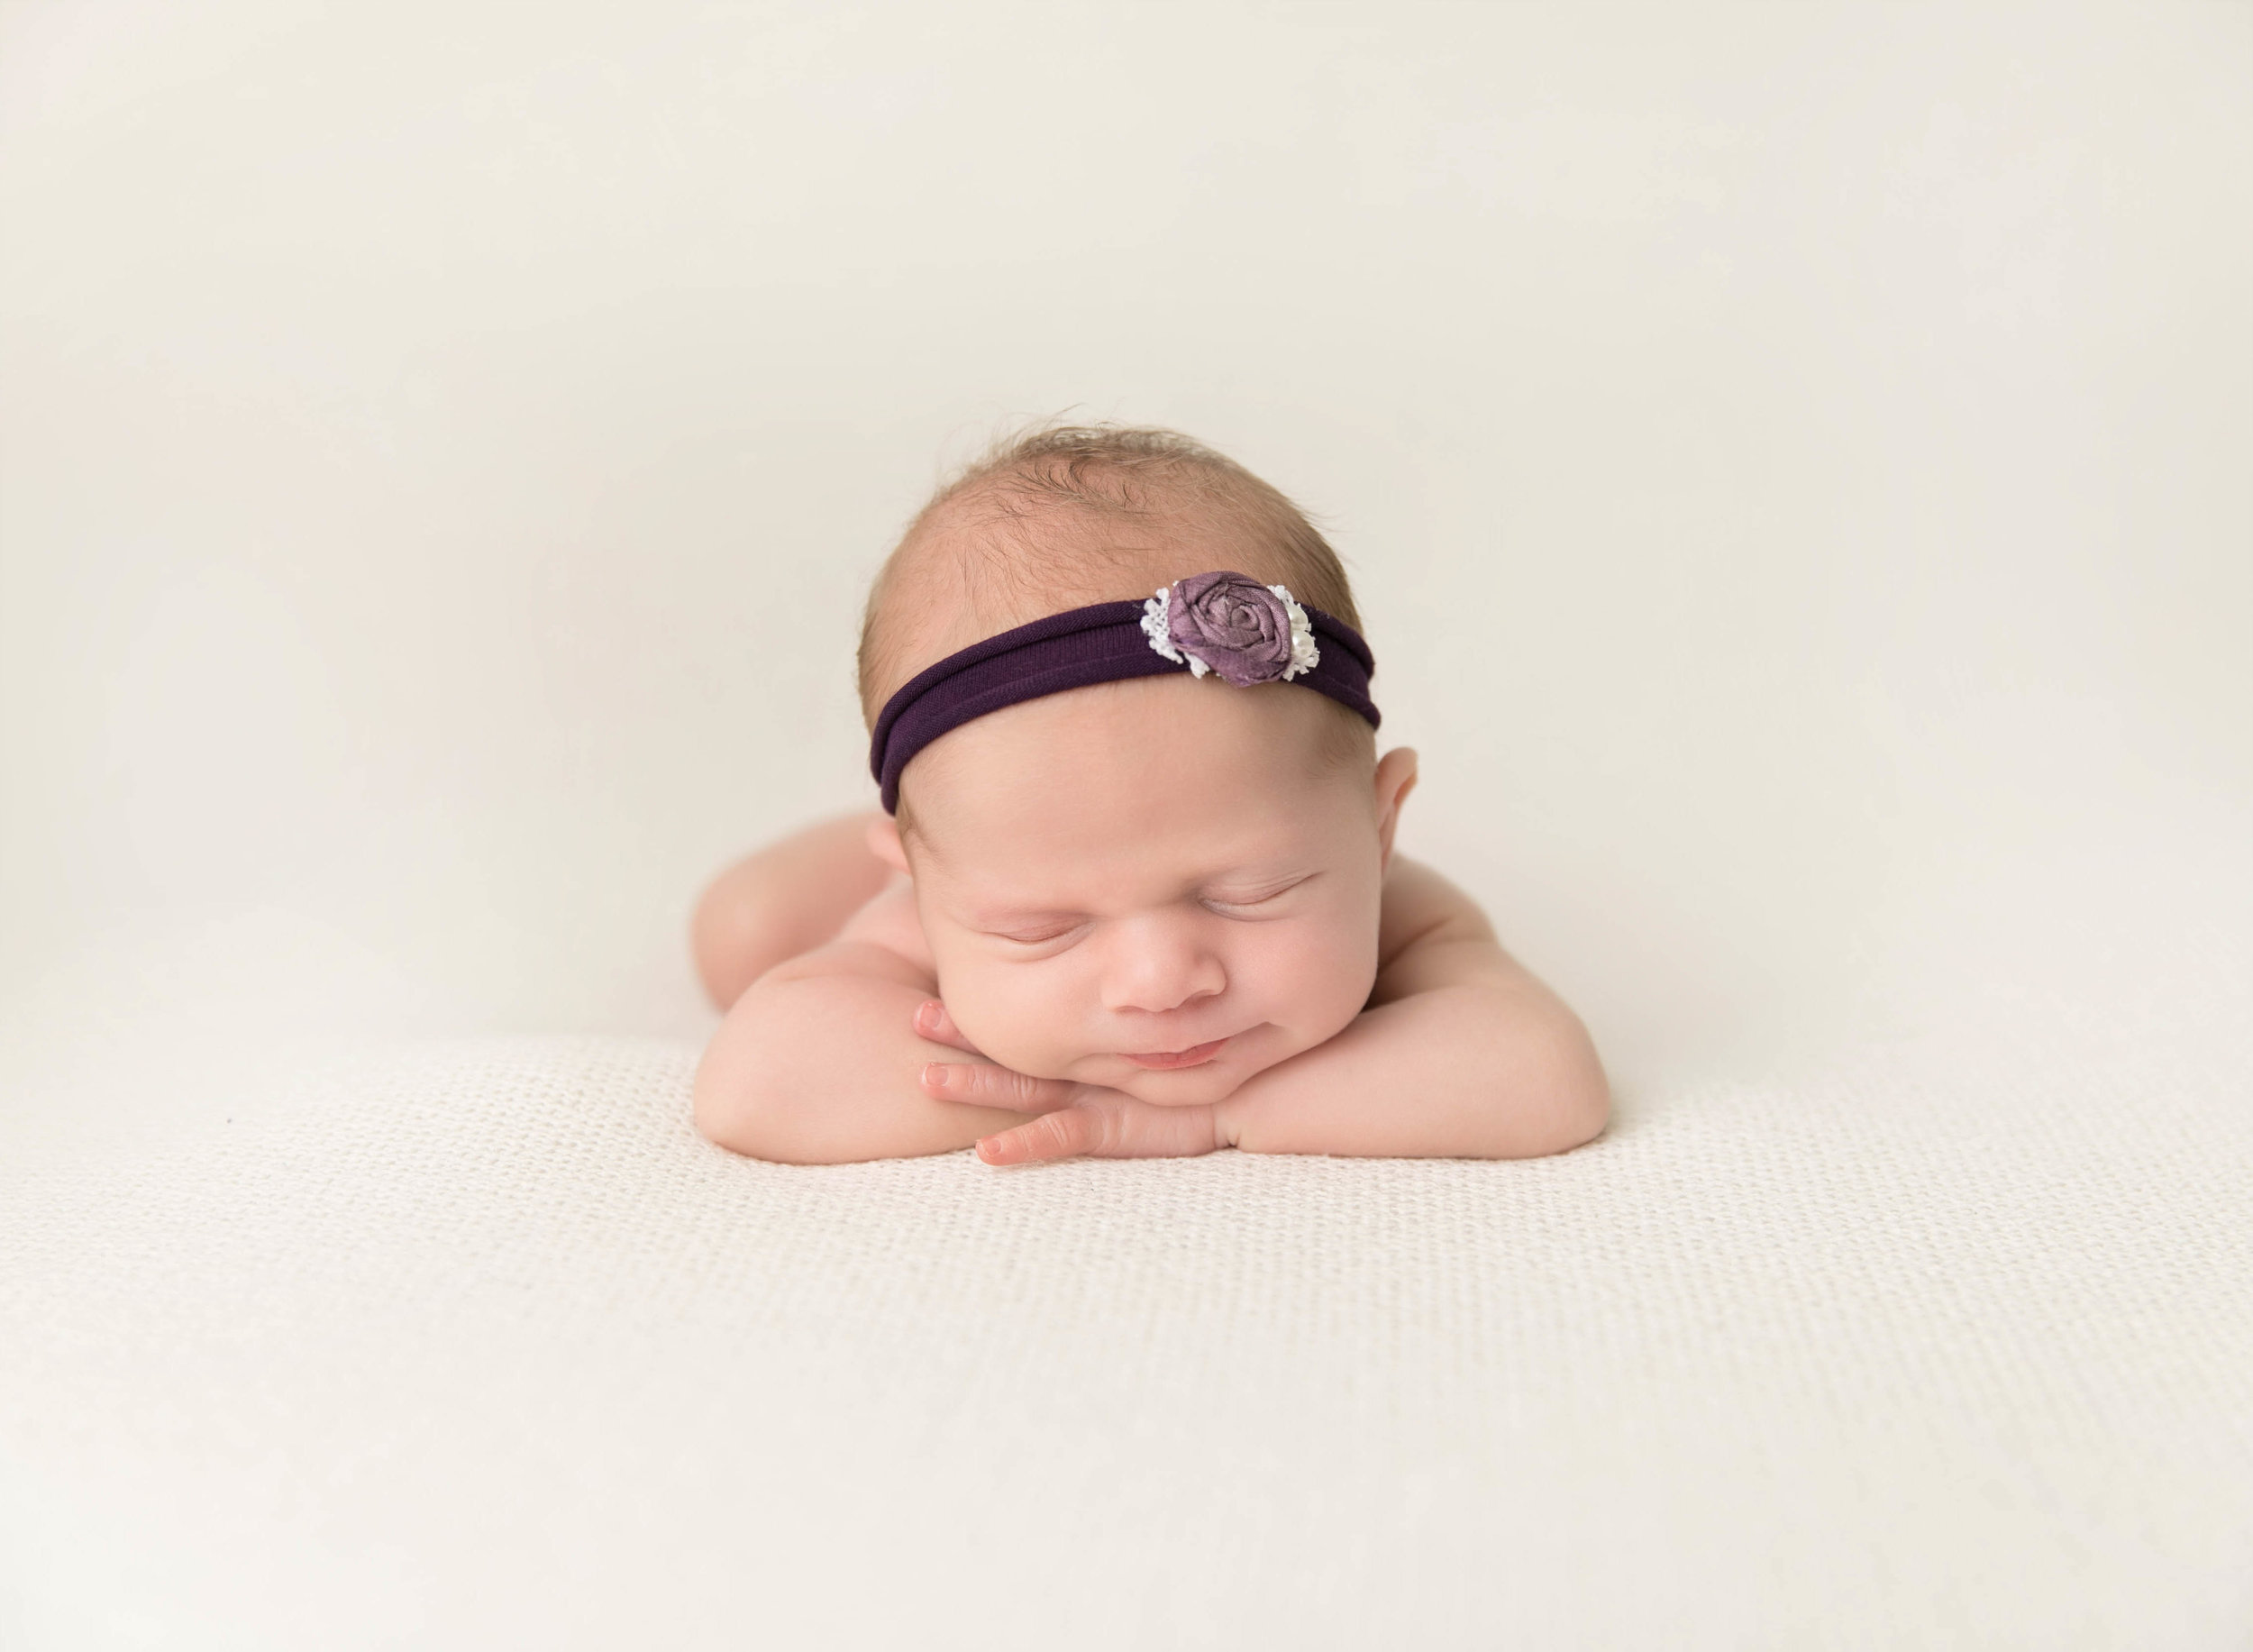 Newborn Photography | Newborn Photographer | Kawartha Lakes Photographer | Lindsay Photographer | Lindsay Ontario Photographer | Kawartha Lakes Photographer | Kawartha Lakes Favourite Photographer | Readers Choice Awards | Morgan Bress Photography | Twins | Twin Newborn Session | Multiple Births